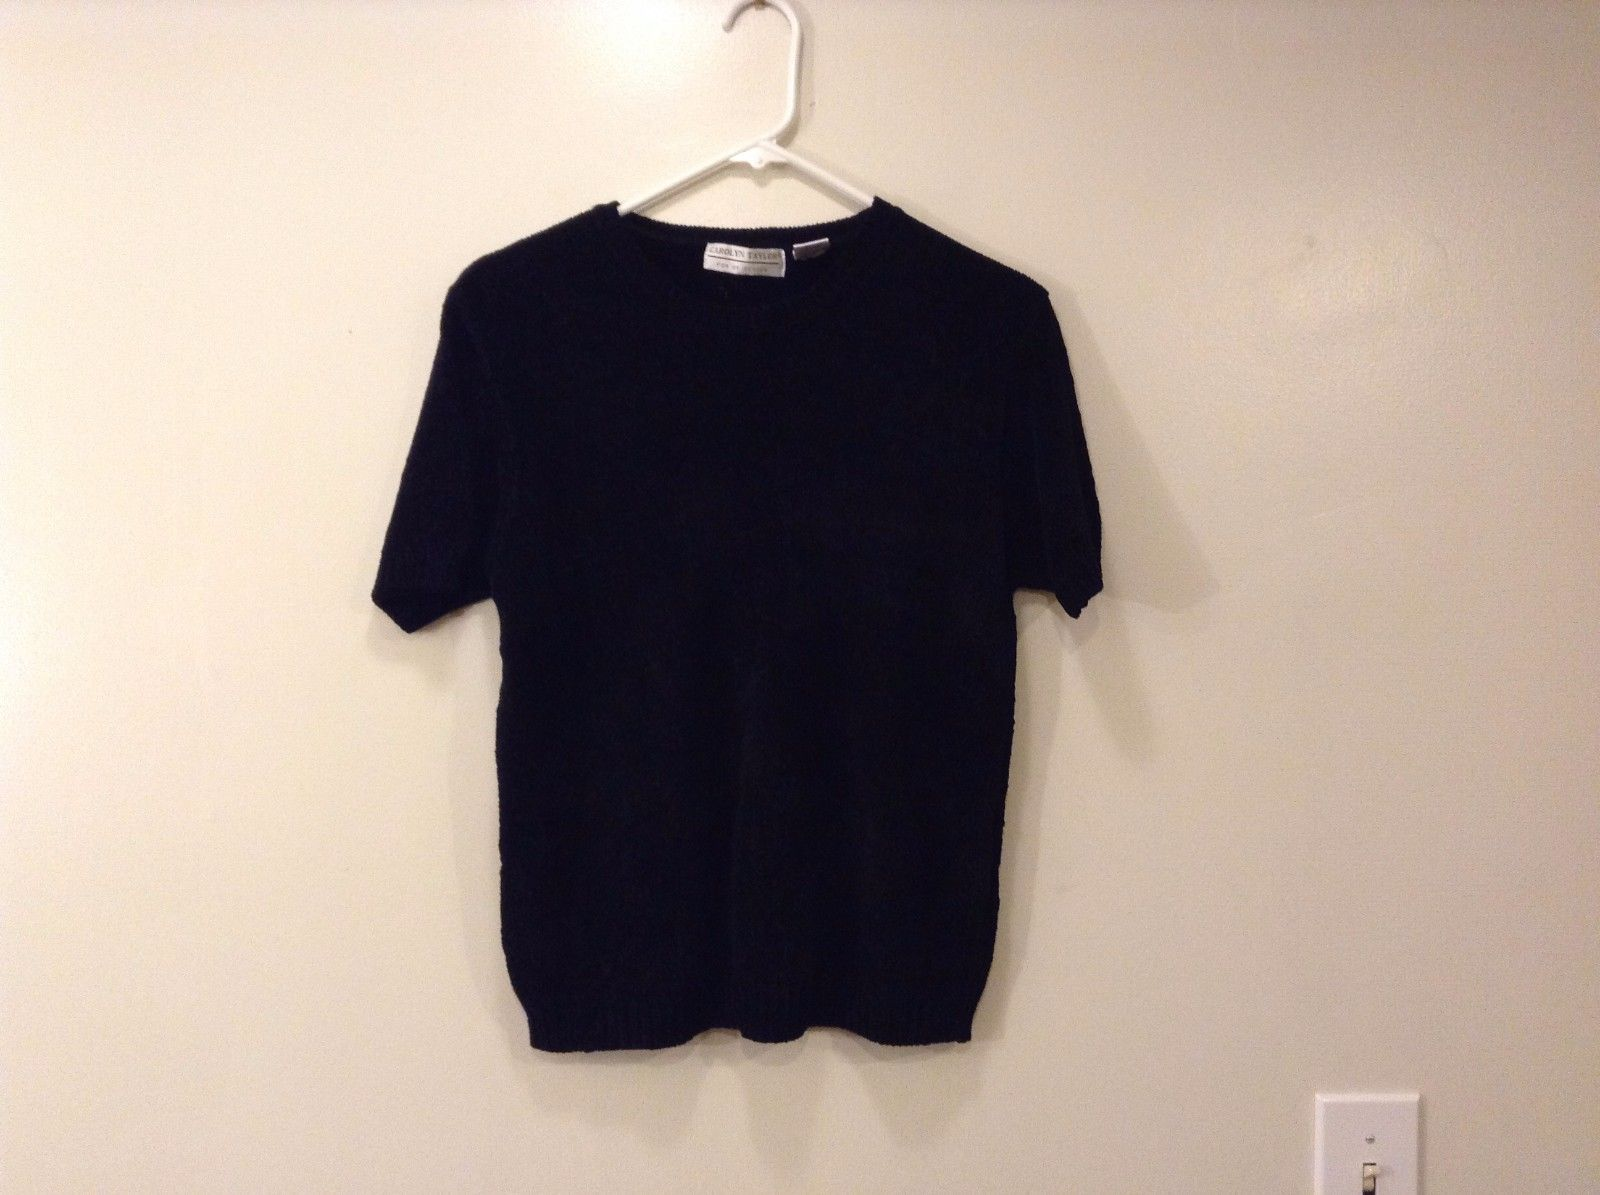 Ladies Carolyn Taylor Black Knitted Tee Sweater Short Sleeves Size M Scoop Neck